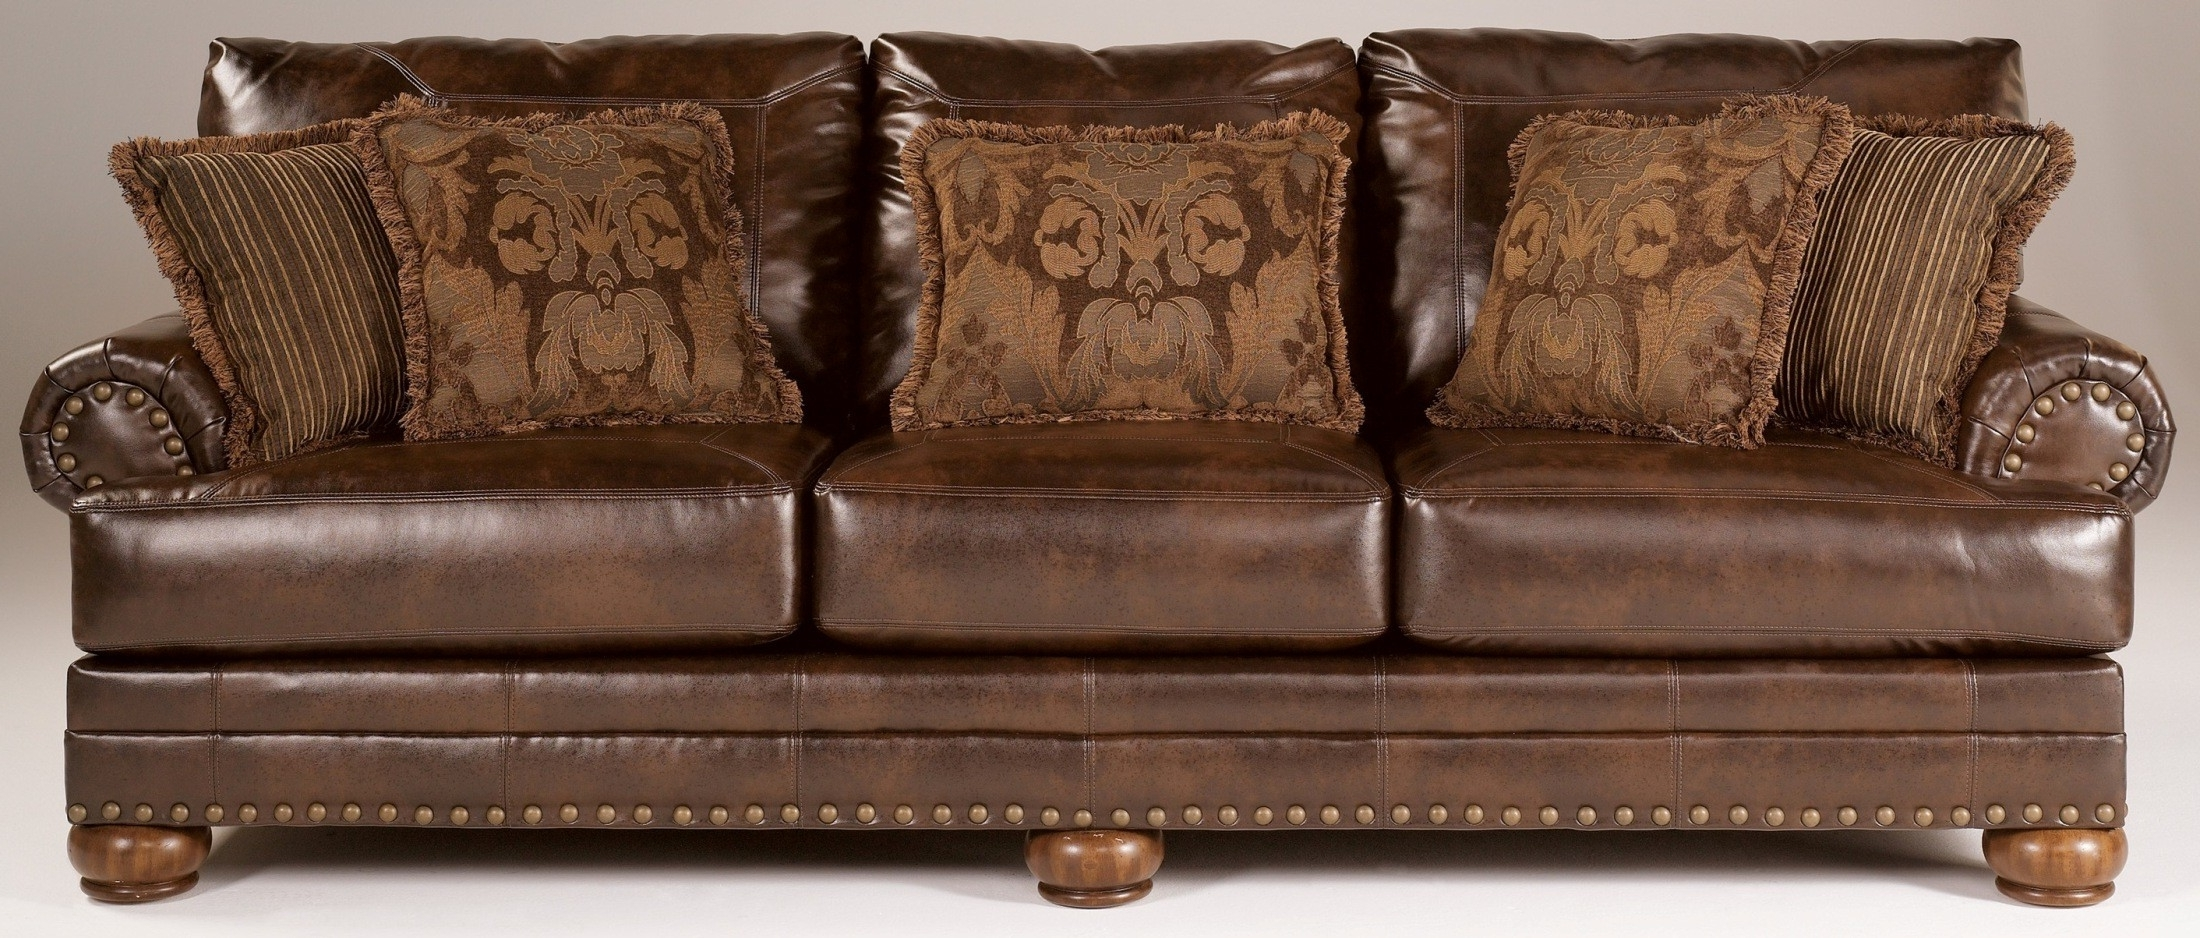 Most Recent Chaling Durablend Antique Sofa From Ashley (9920038) (View 12 of 20)